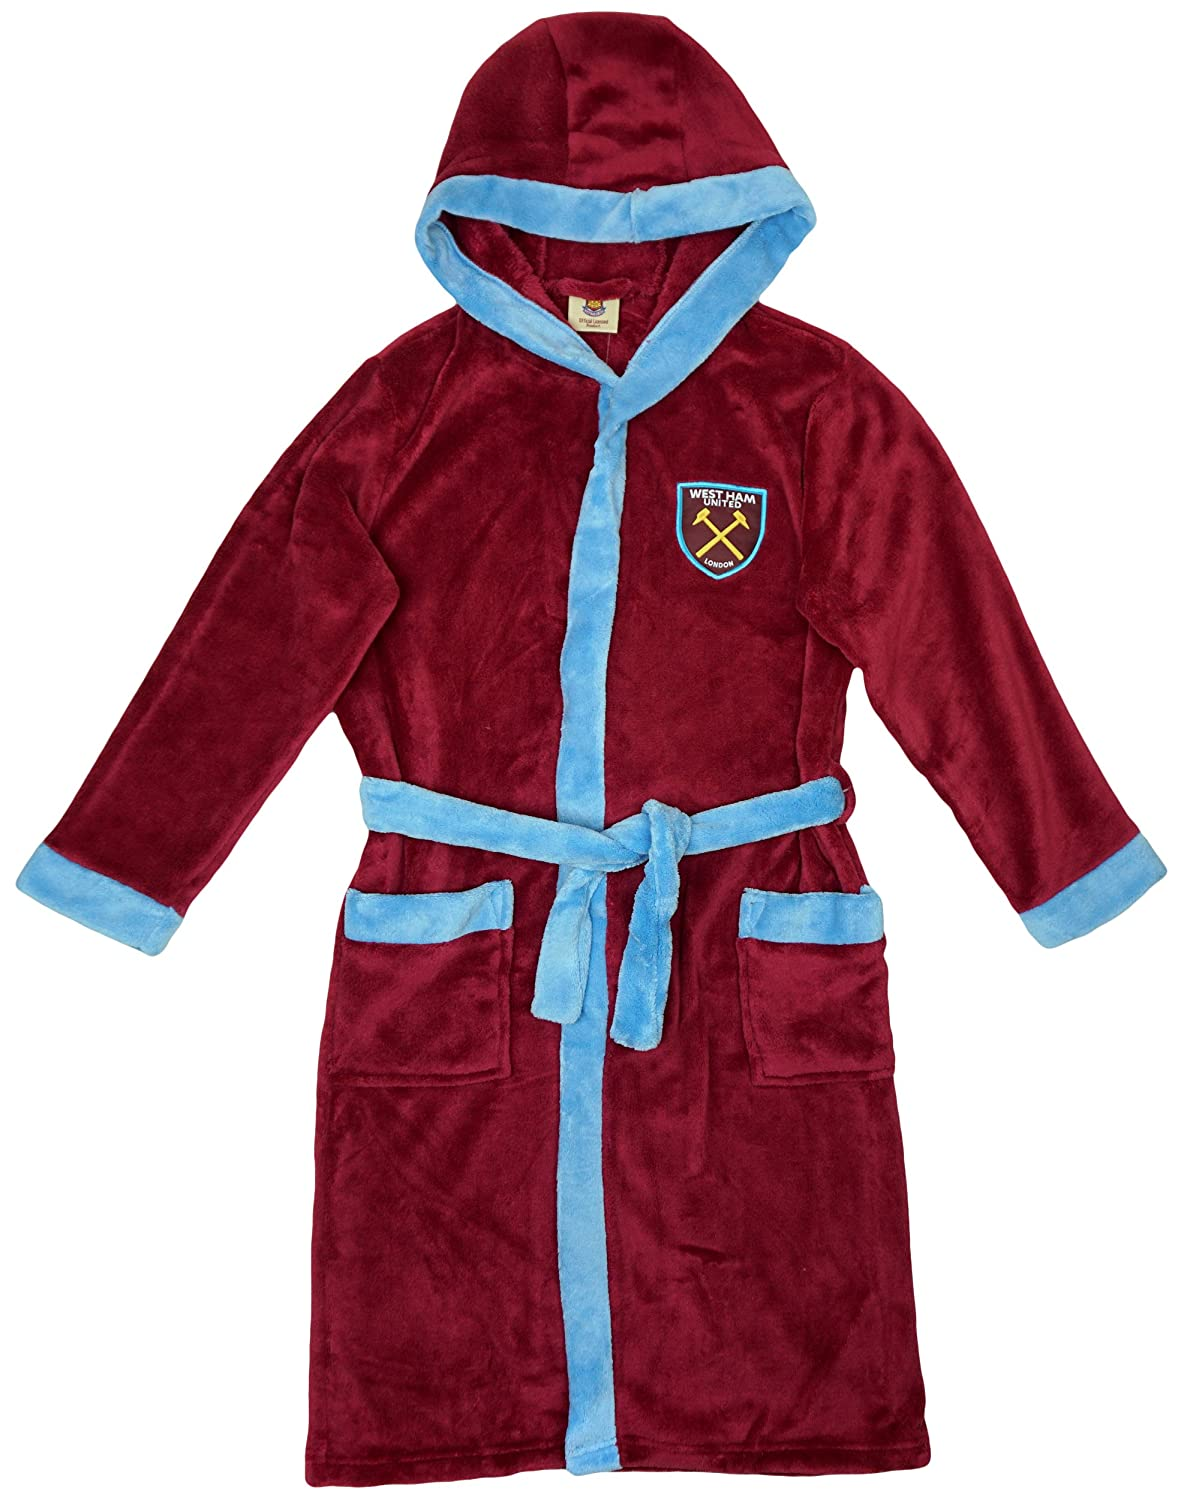 Boys WEST HAM United FC Football Fleece Hooded Dressing Gown Sizes from 3 to 10 Years